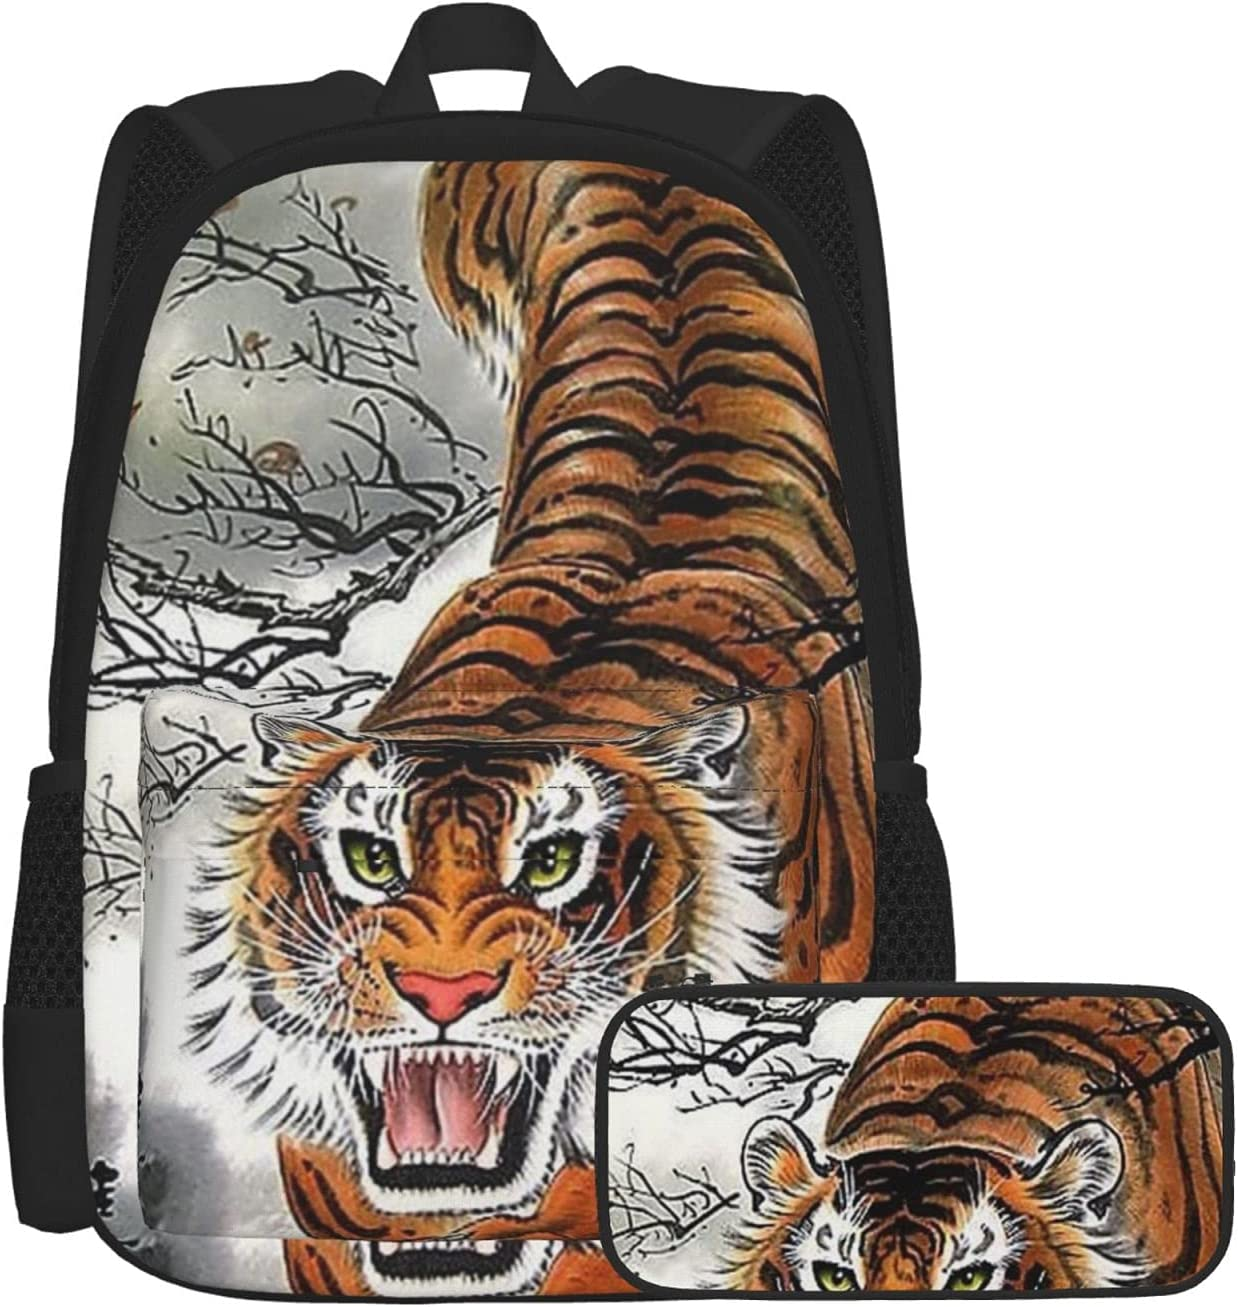 Unisex Teens Backpack with Today's only Pencil Bag Lightwei Combination Tulsa Mall Case